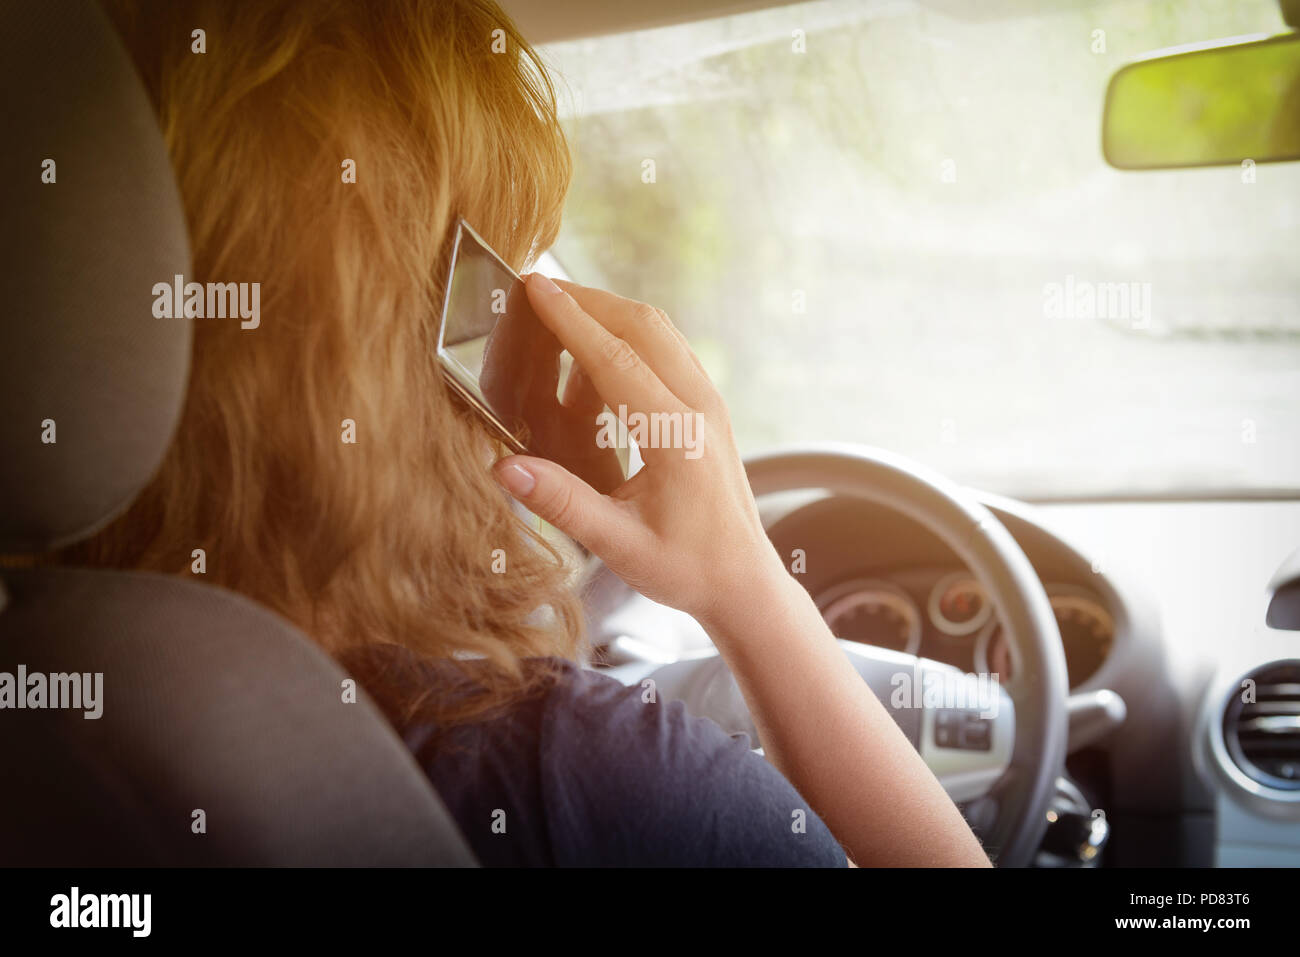 Woman using phone while driving the car. Risky driving behaviors concept - Stock Image